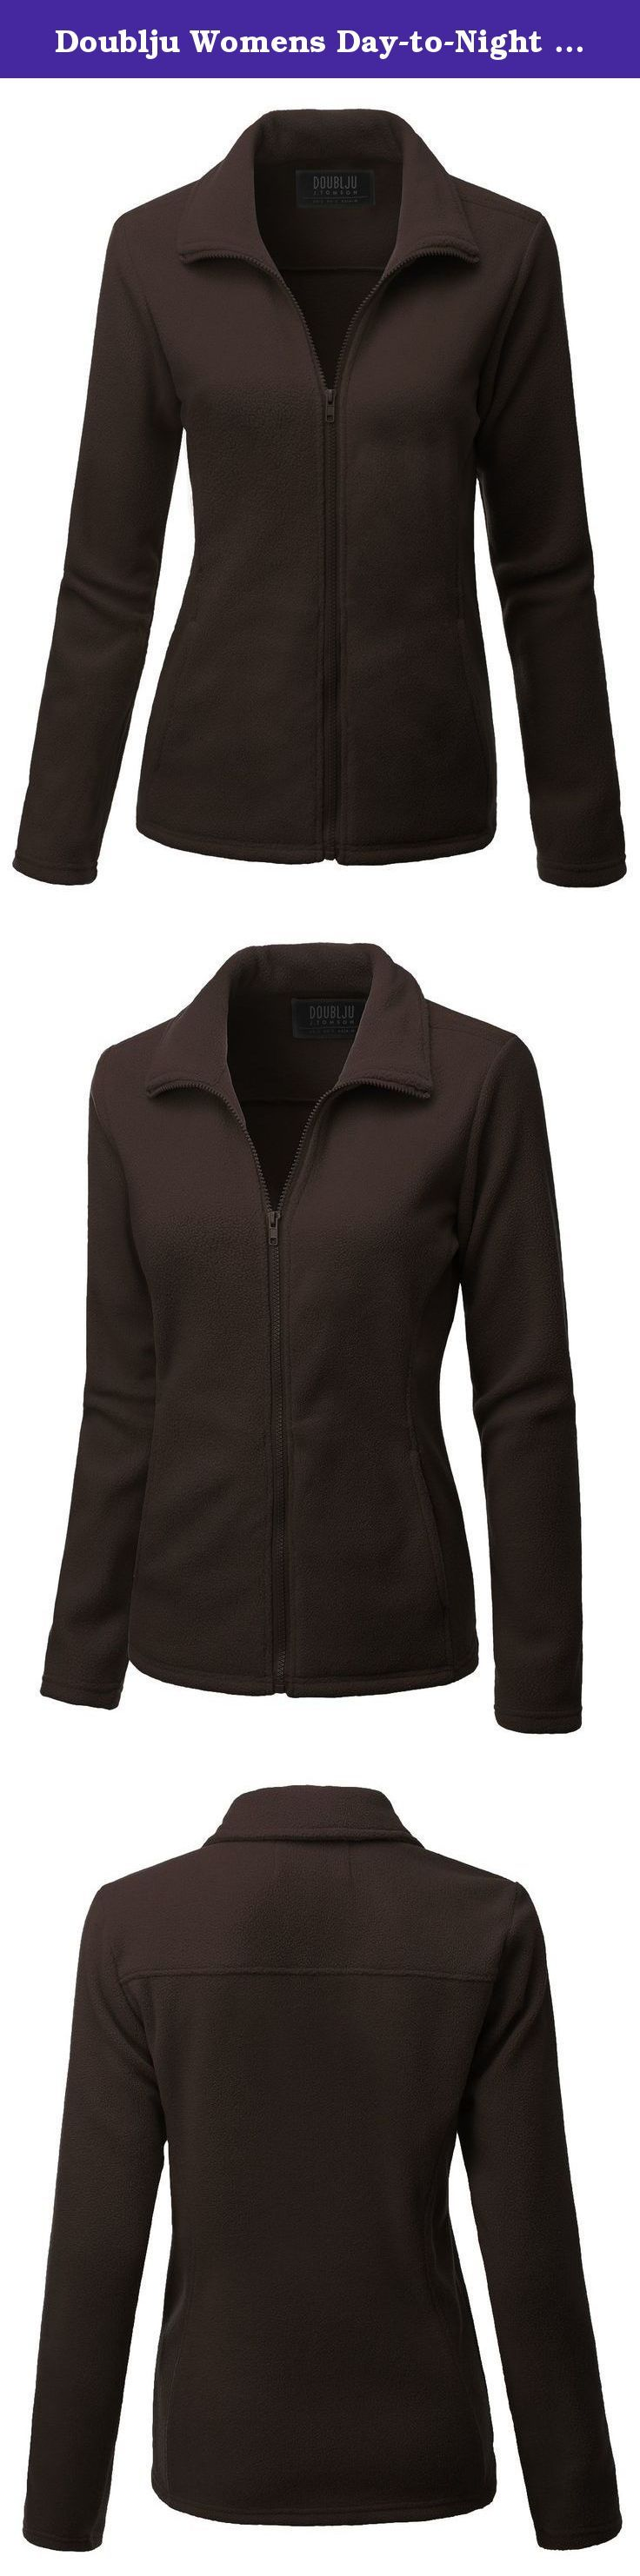 Doublju Womens Day-to-Night Thermal 3/4 Sleeve Big Size Fleece Outwear BROWN,3XL. Doublju Womens Day-to-Night Thermal 3/4 Sleeve Big Size Fleece Outwear BROWN,3XL jackets for women sale quality leather jackets leather coats uk brown leather jackets white jackets for women long parka coats ris A Long Silk Jacket SJ408 sale coat Feellib Women's Open Front Blazer Jacket with Sequins and Pleatherd Back cheap leather jackets for men Nanette Lepore Women's Great Plains Brocade Collarless Jacket...